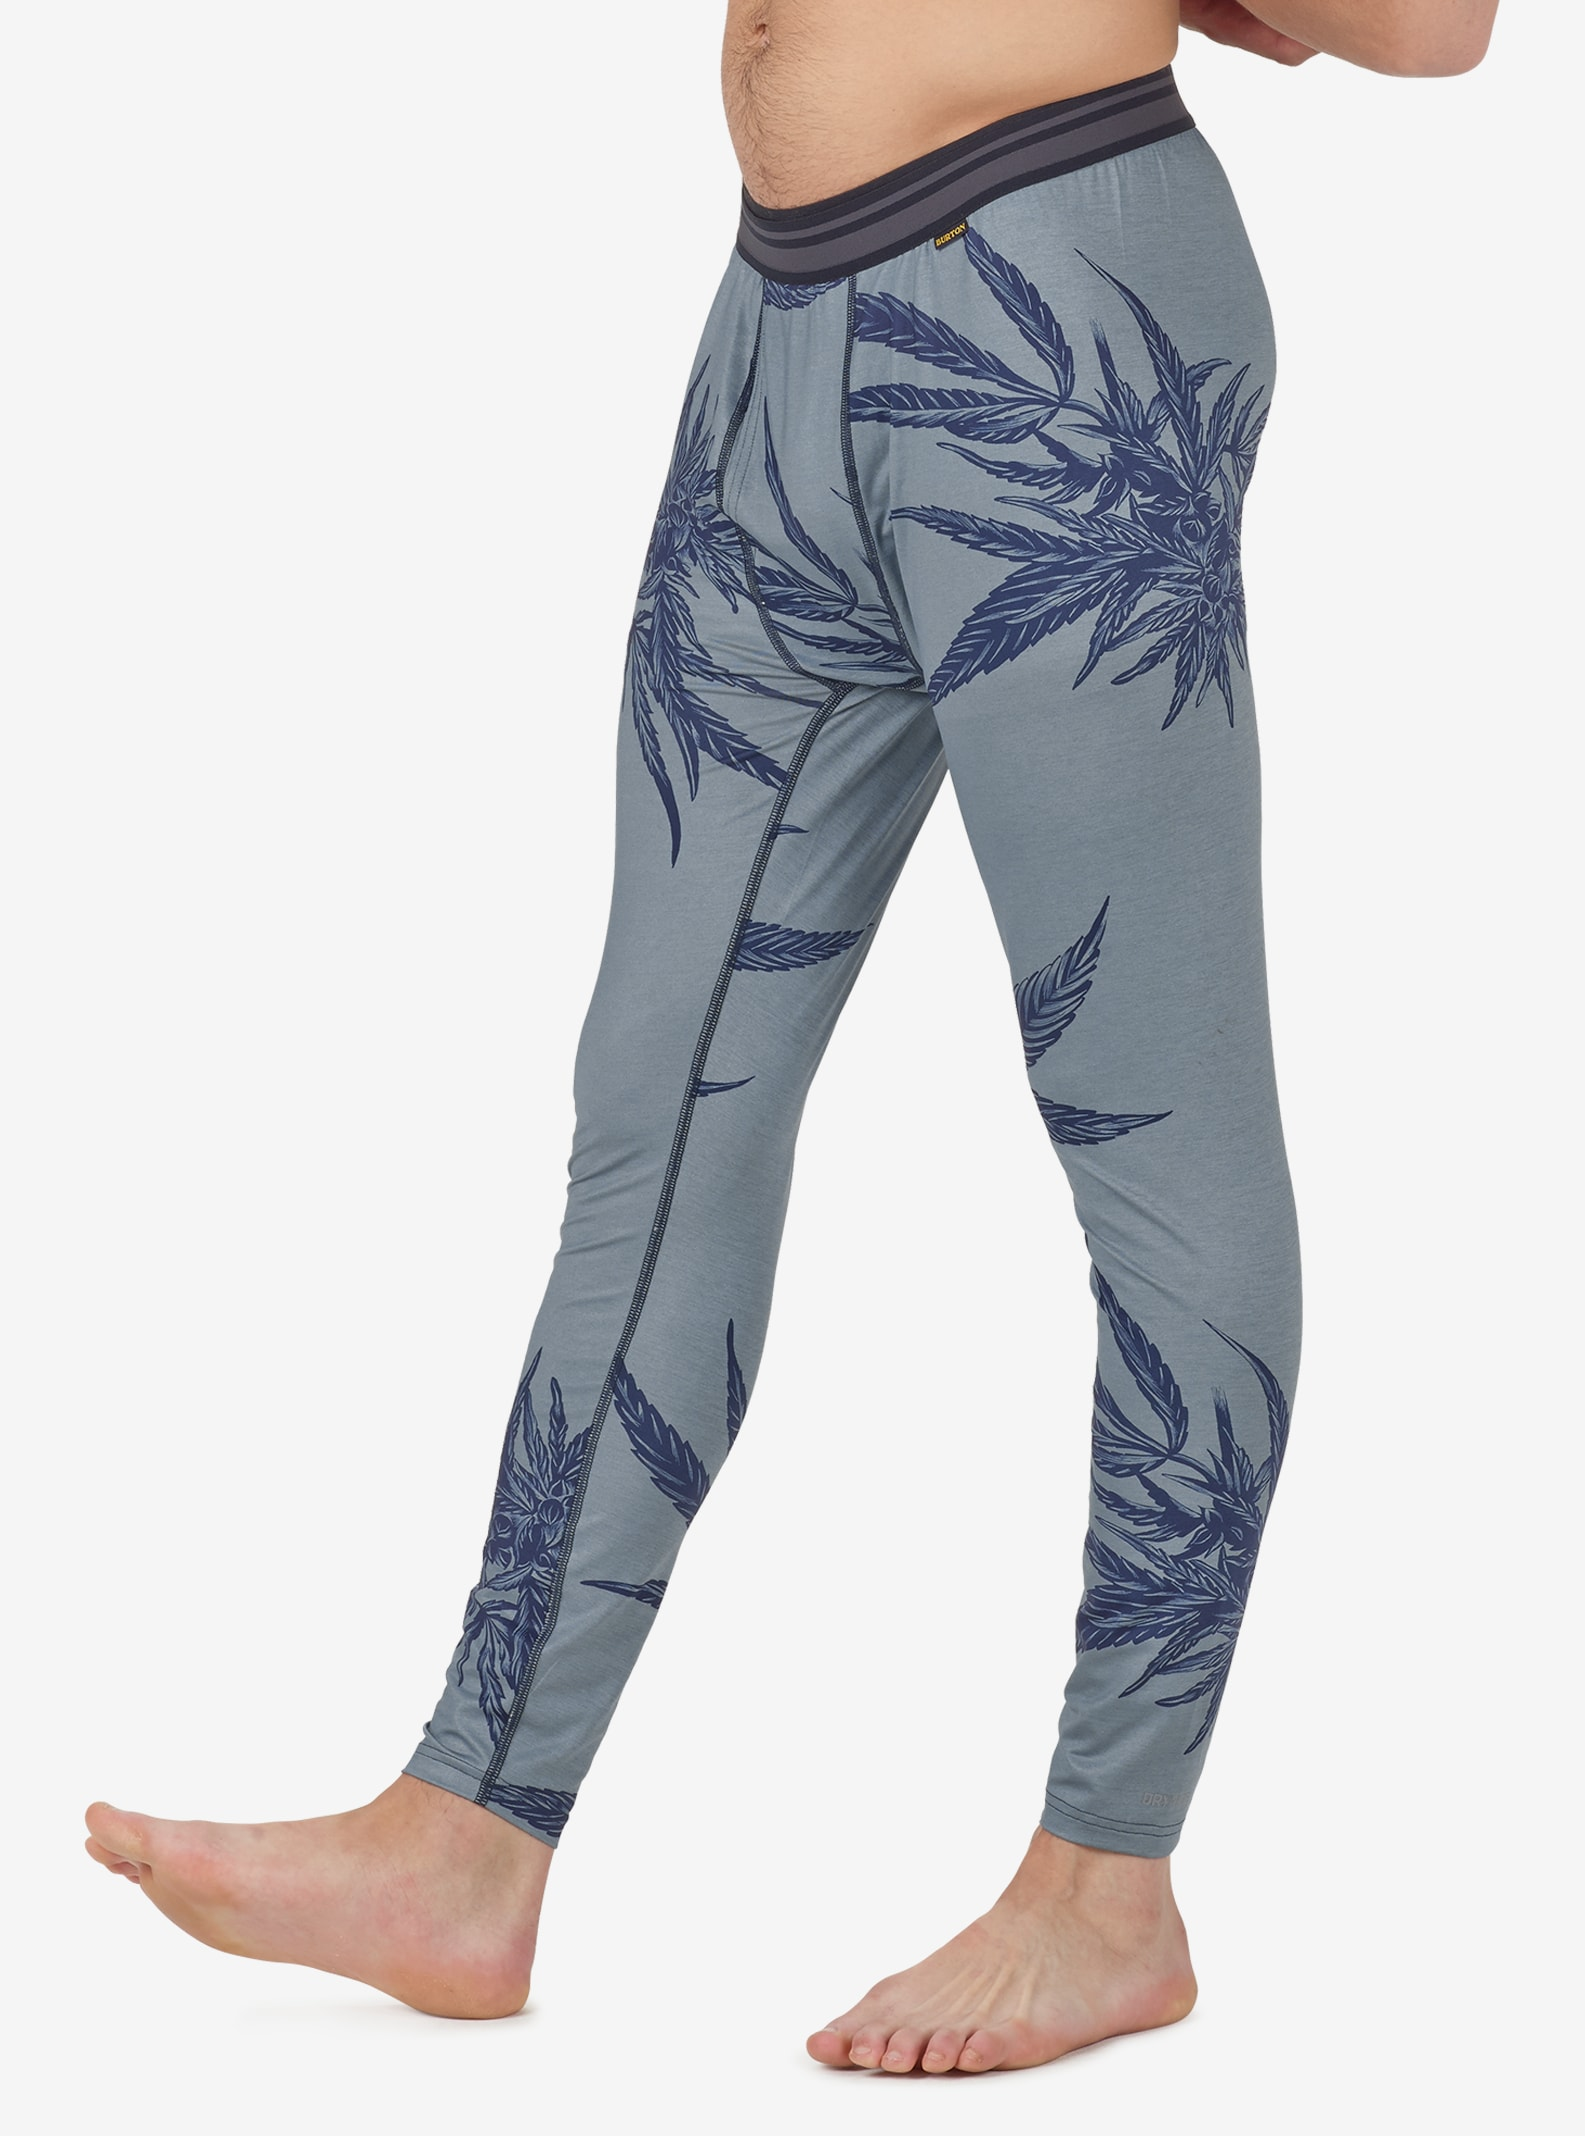 Men's Burton Lightweight Base Layer Pant shown in Winter Tropical Trip